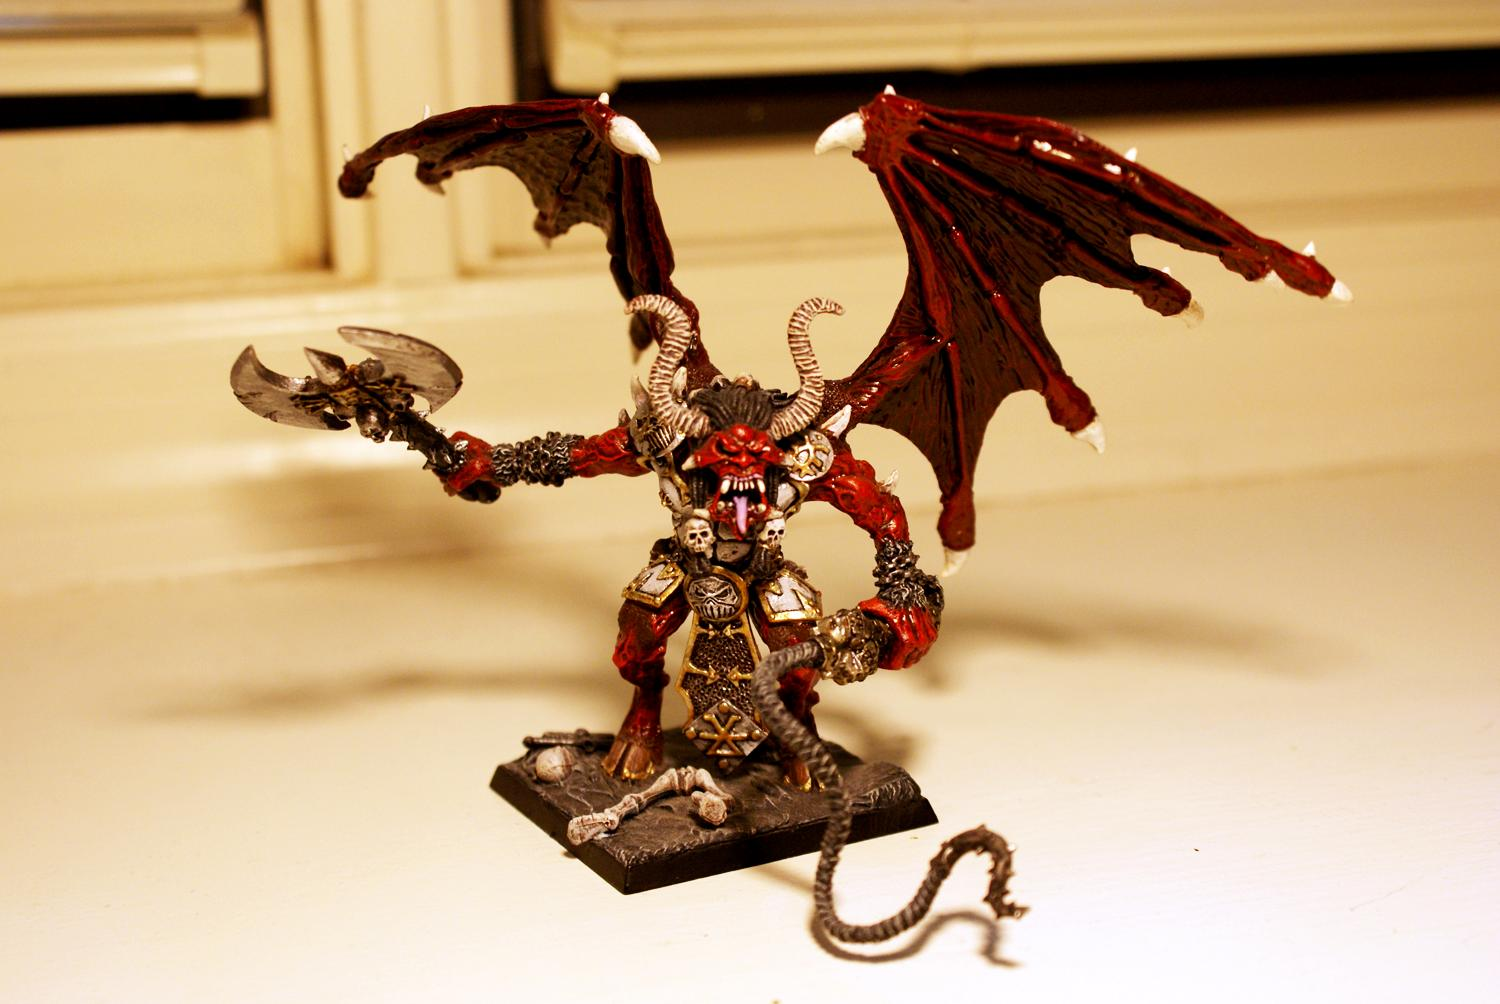 Chaos, Conversion, Daemons, Greater, Khorne, Red, Warhammer 40,000, World Eaters